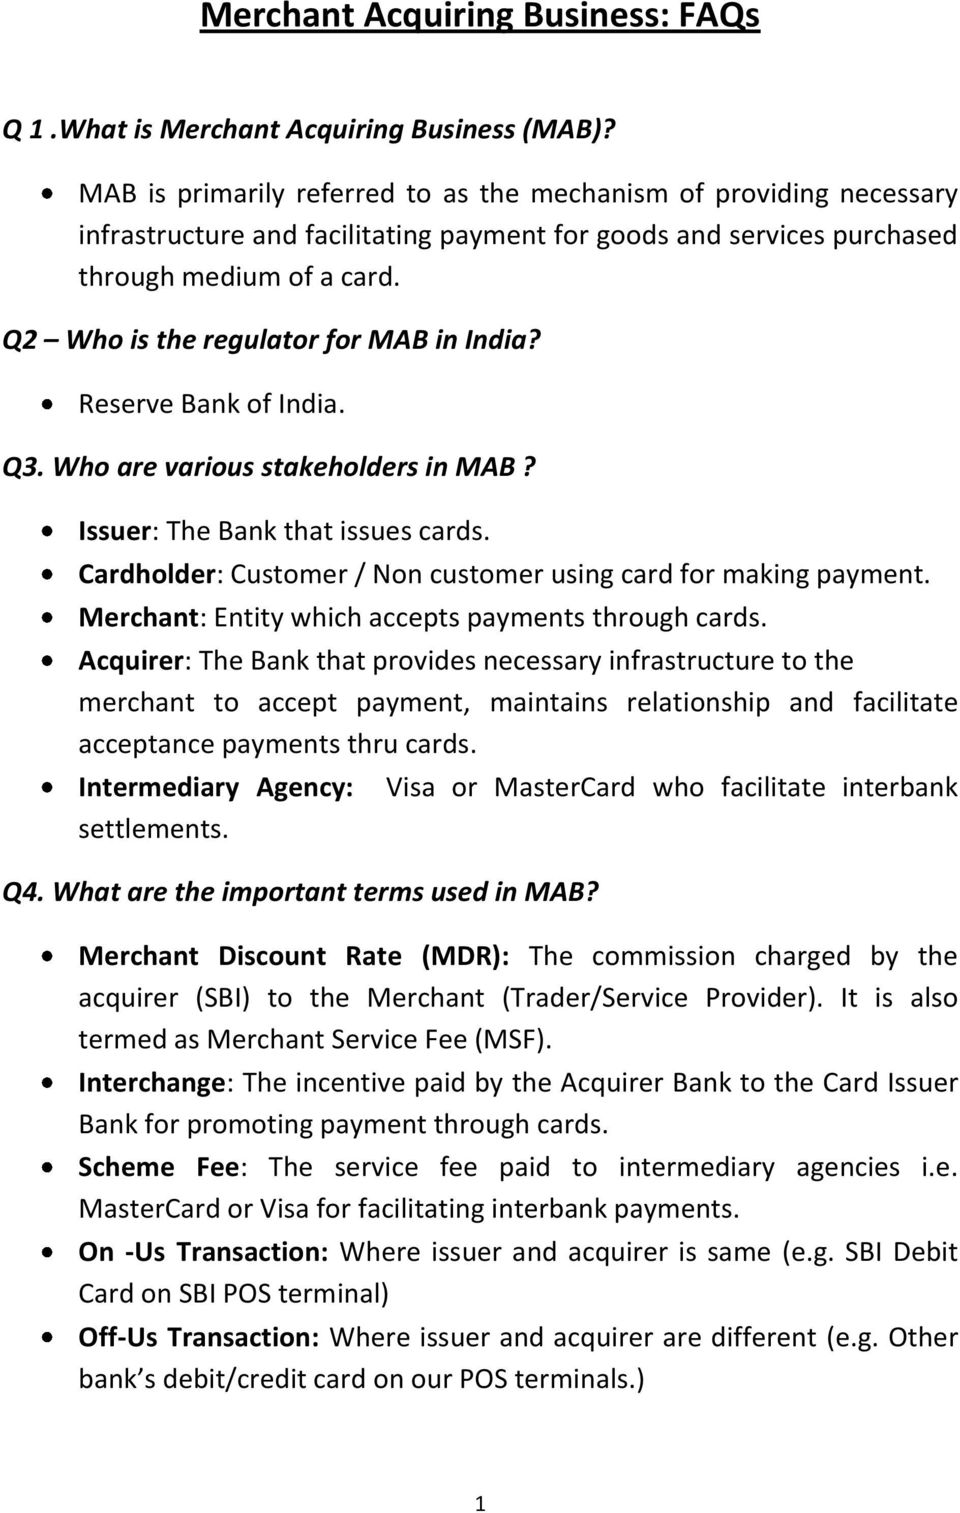 Q2 Who is the regulator for MAB in India? Reserve Bank of India. Q3. Who are various stakeholders in MAB? Issuer: The Bank that issues cards.